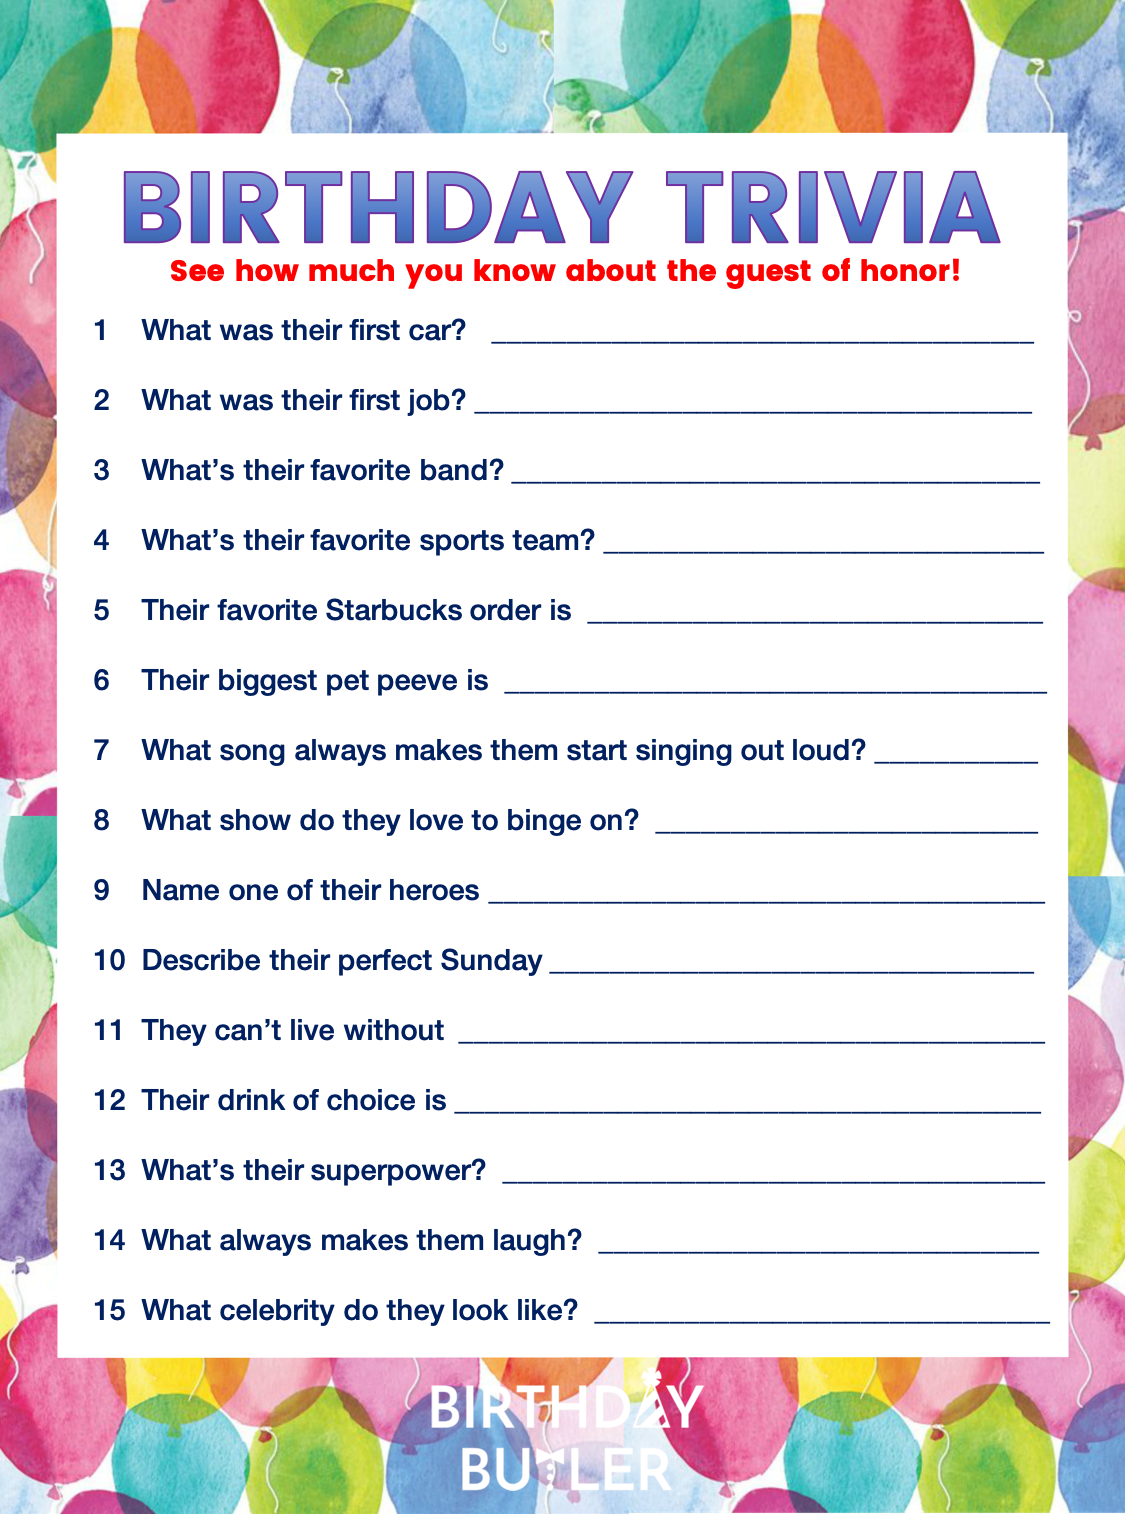 graphic regarding Printable Trivia Question and Answers identified as Insert OOMPH! Towards YOUR Occasion WITH BIRTHDAY TRIVIA Birthday Butler